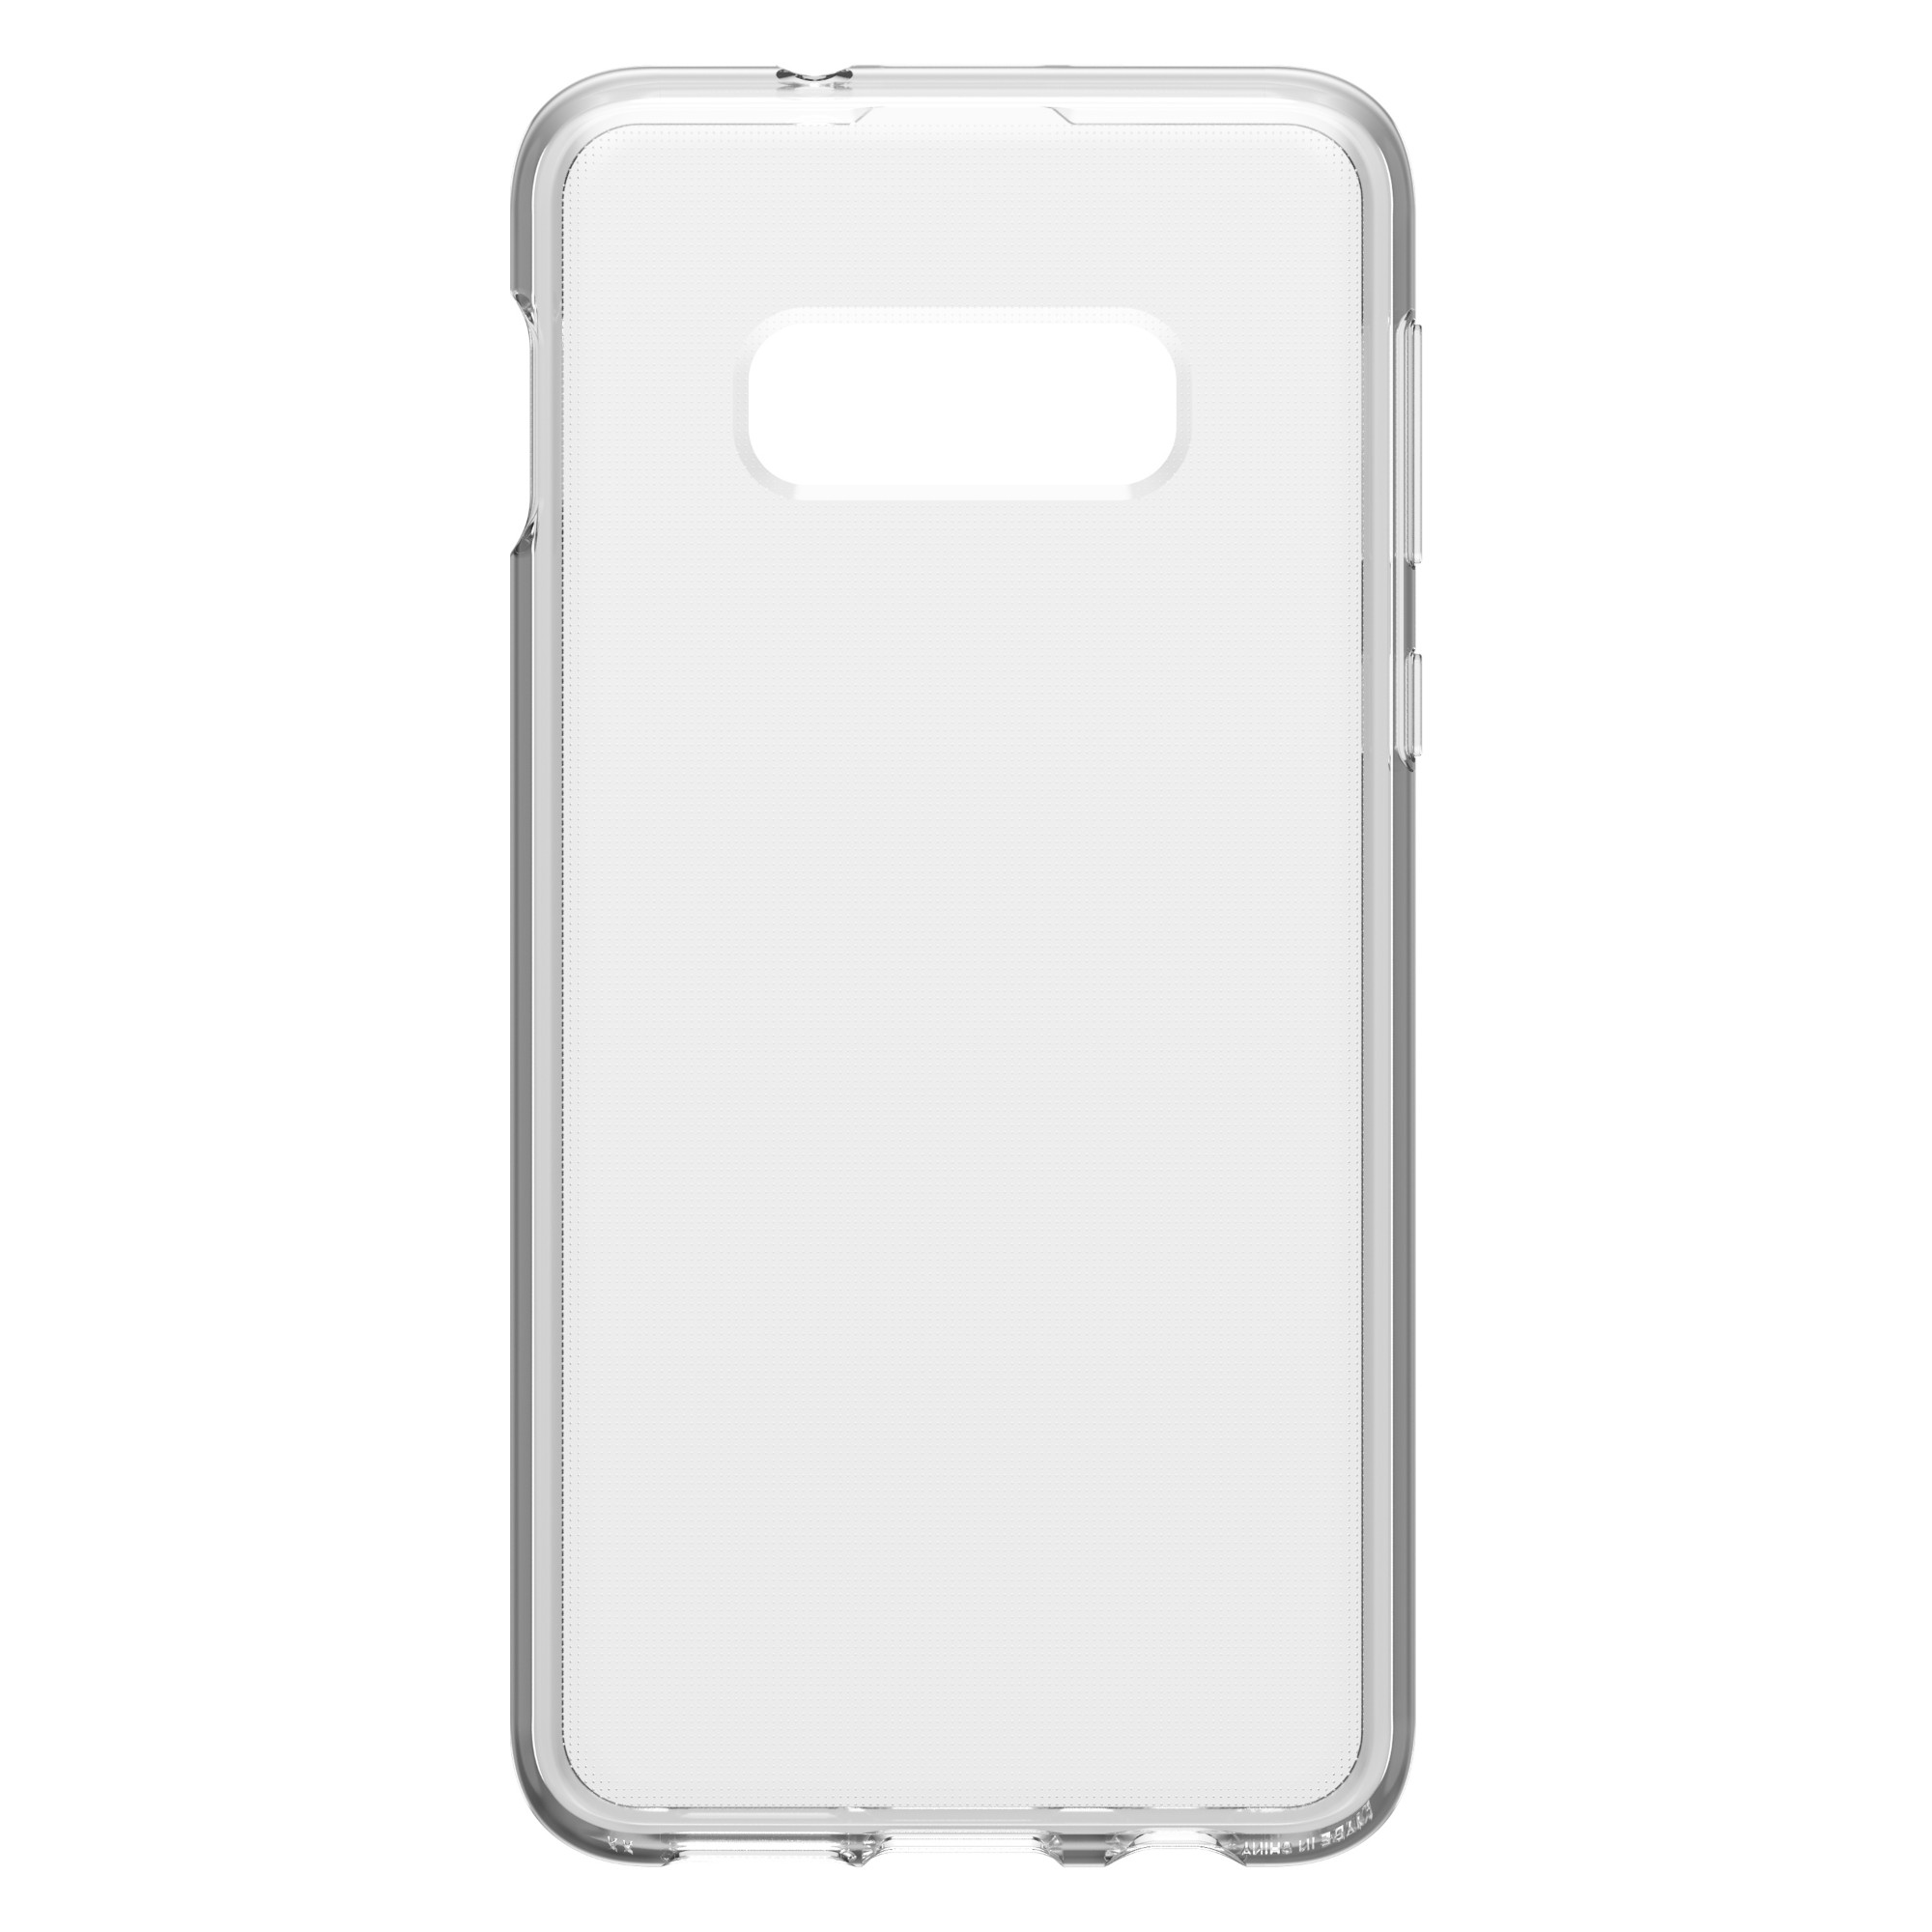 OtterBox Clearly Protected Skin + Alpha Glass Series for Samsung Galaxy S10e, transparent